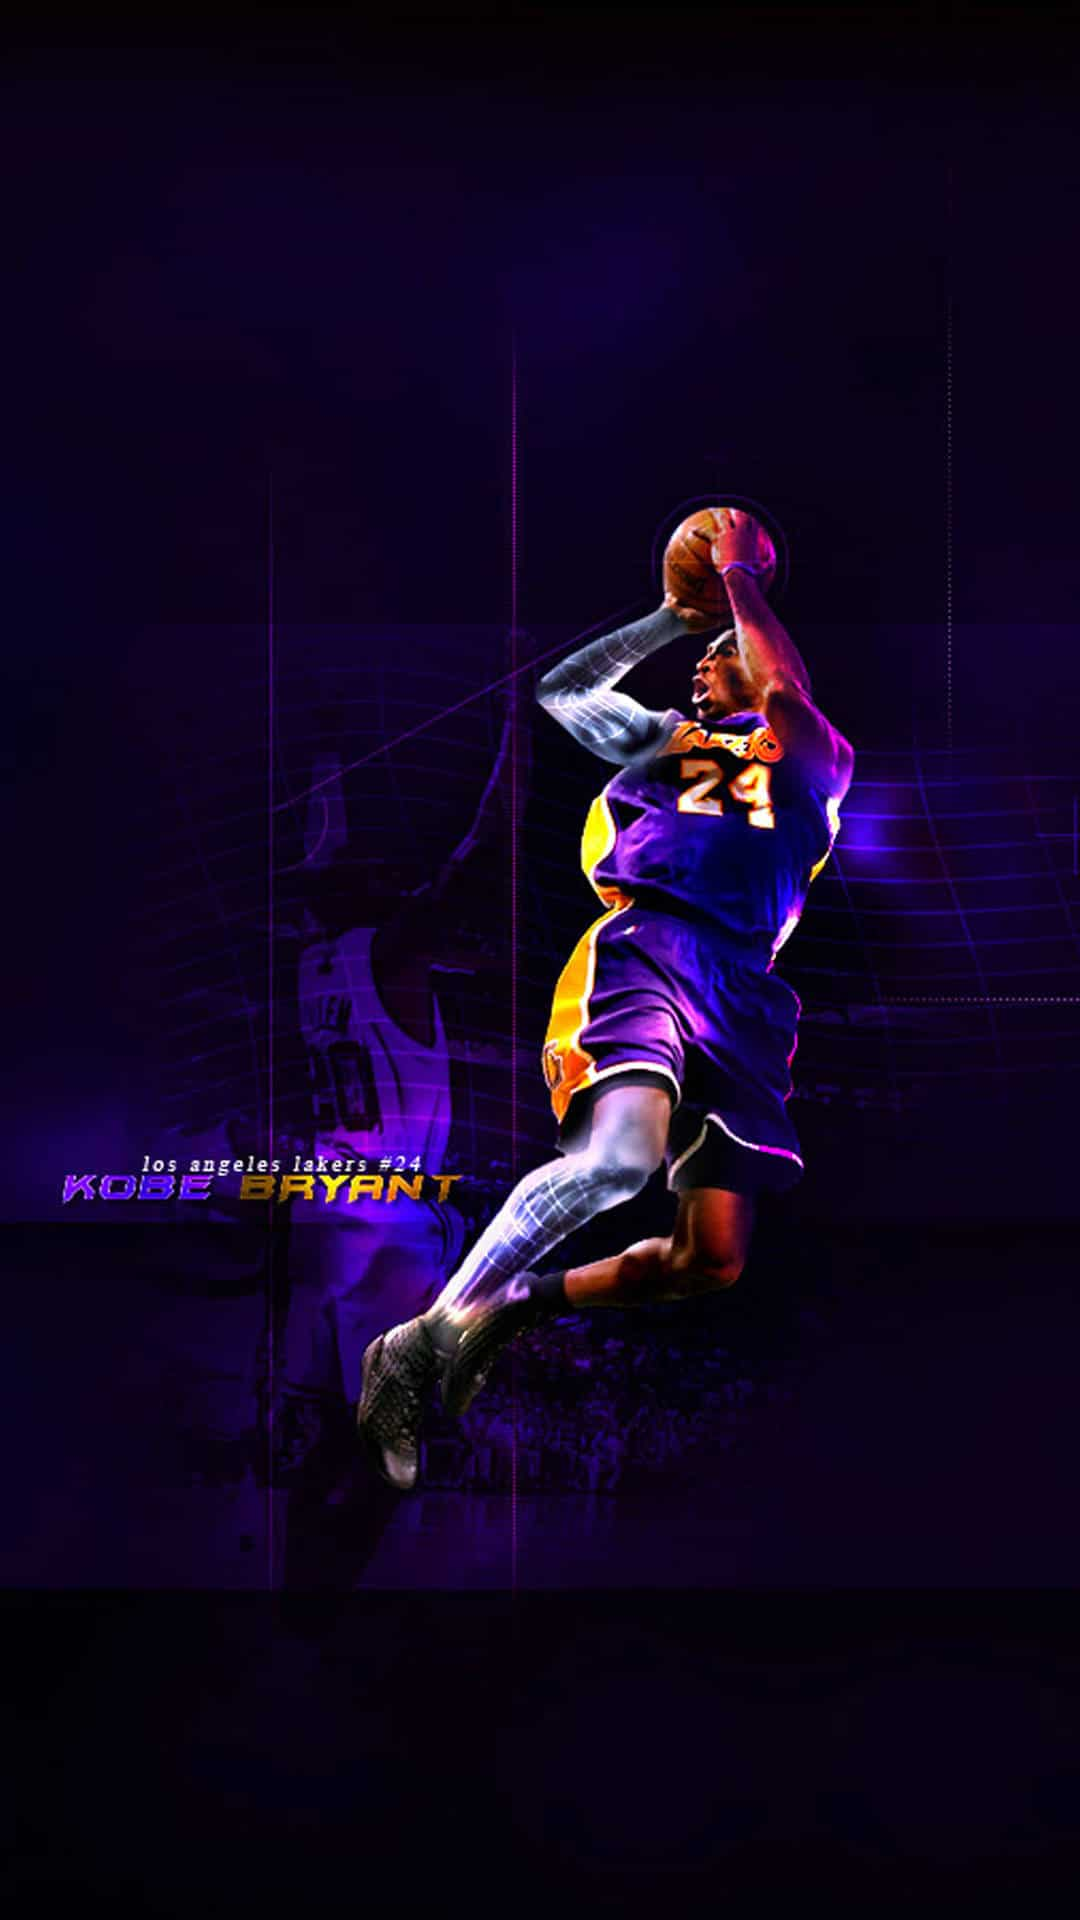 Lakers wallpaper